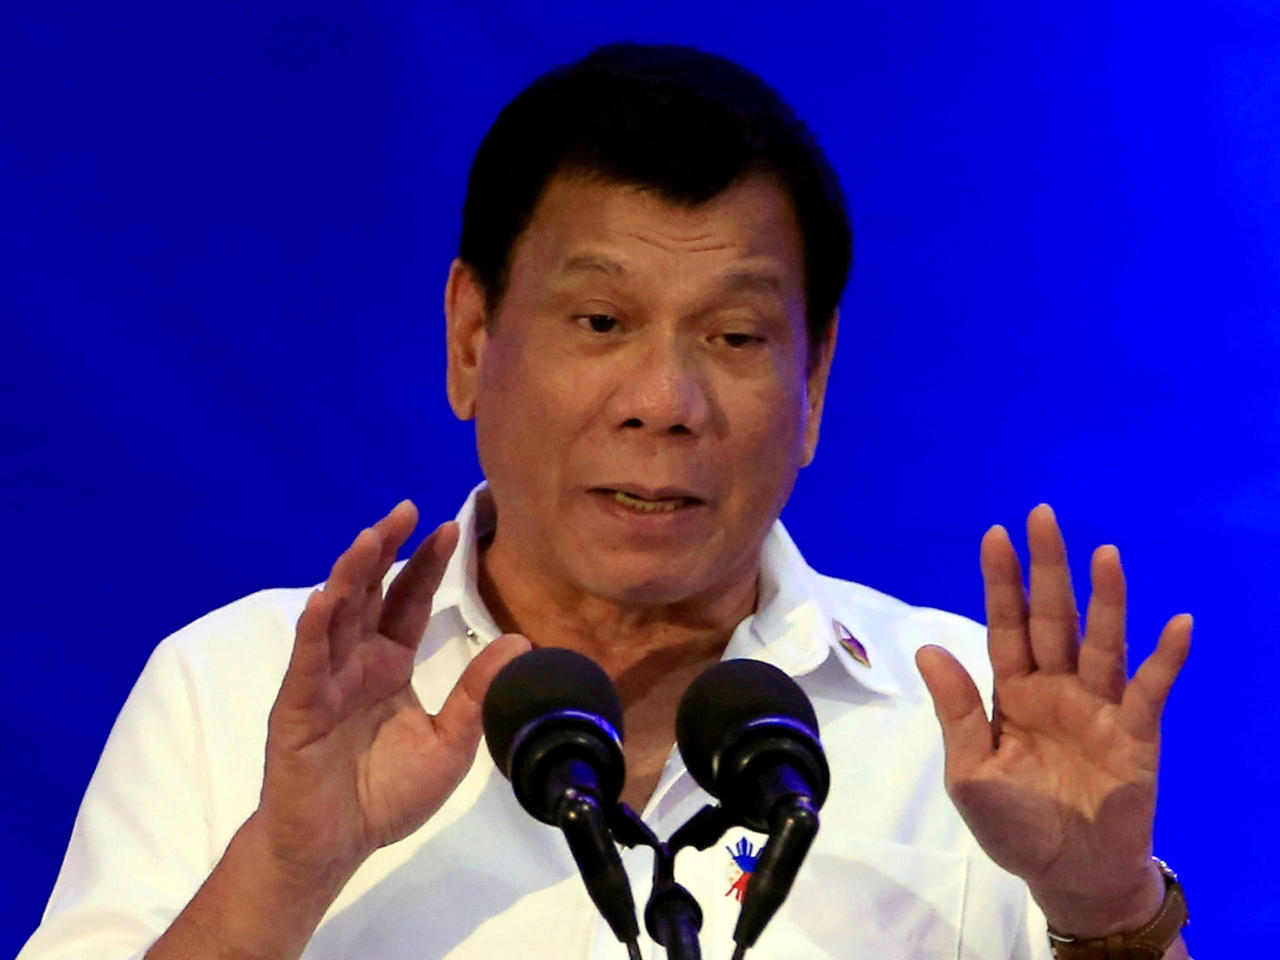 Philippines President Duterte sparks outrage with 'misogynist' kiss